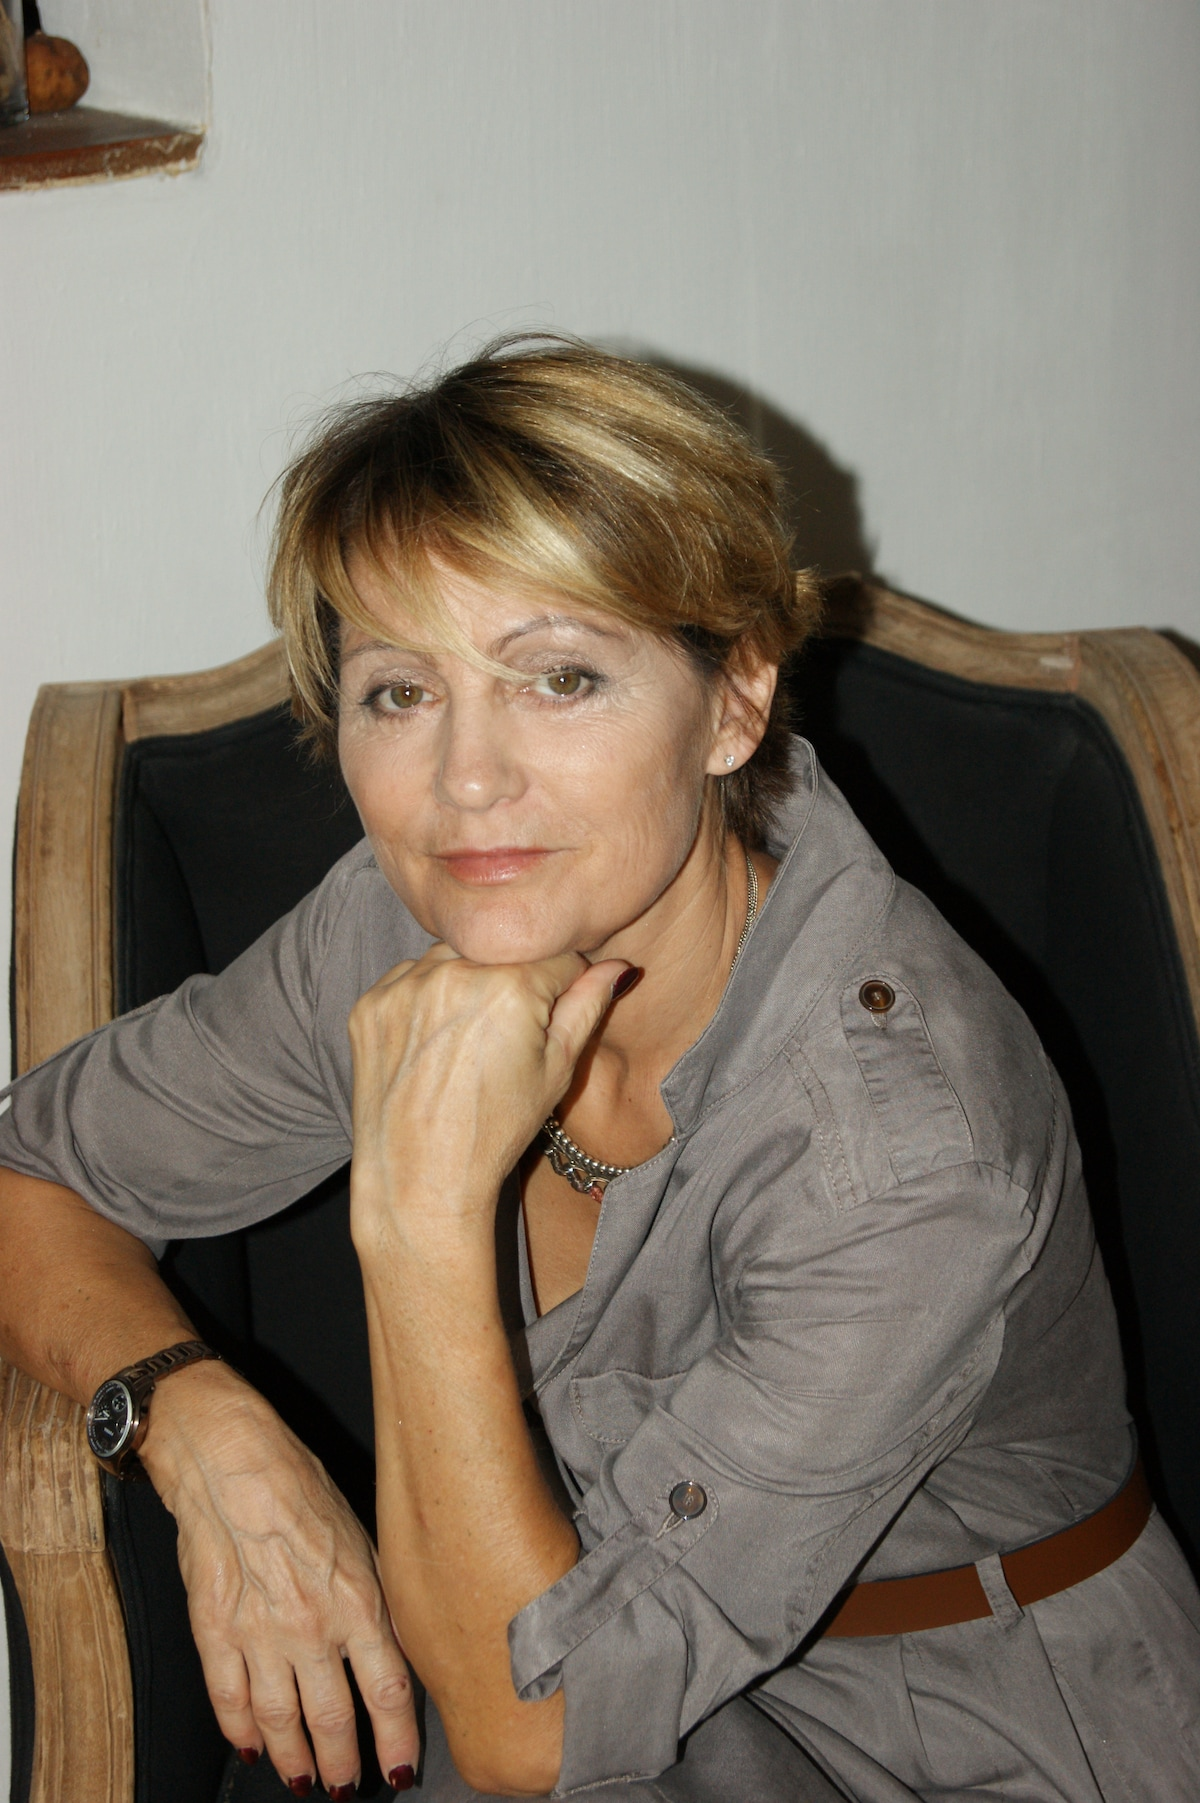 Patricia From Cannes, France